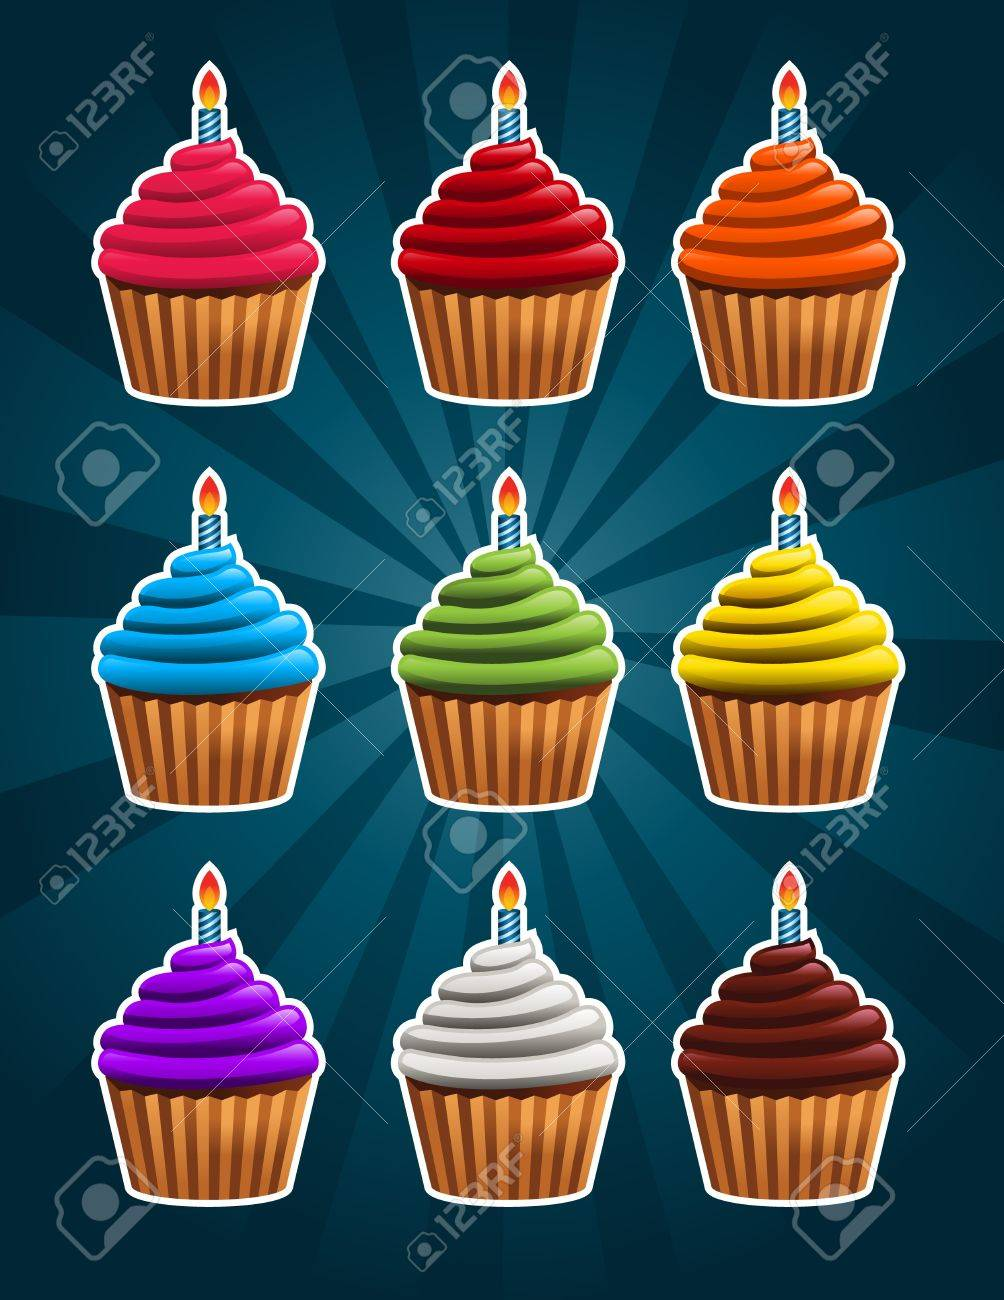 Birthday Cupcakes Stock Vector - 18392878